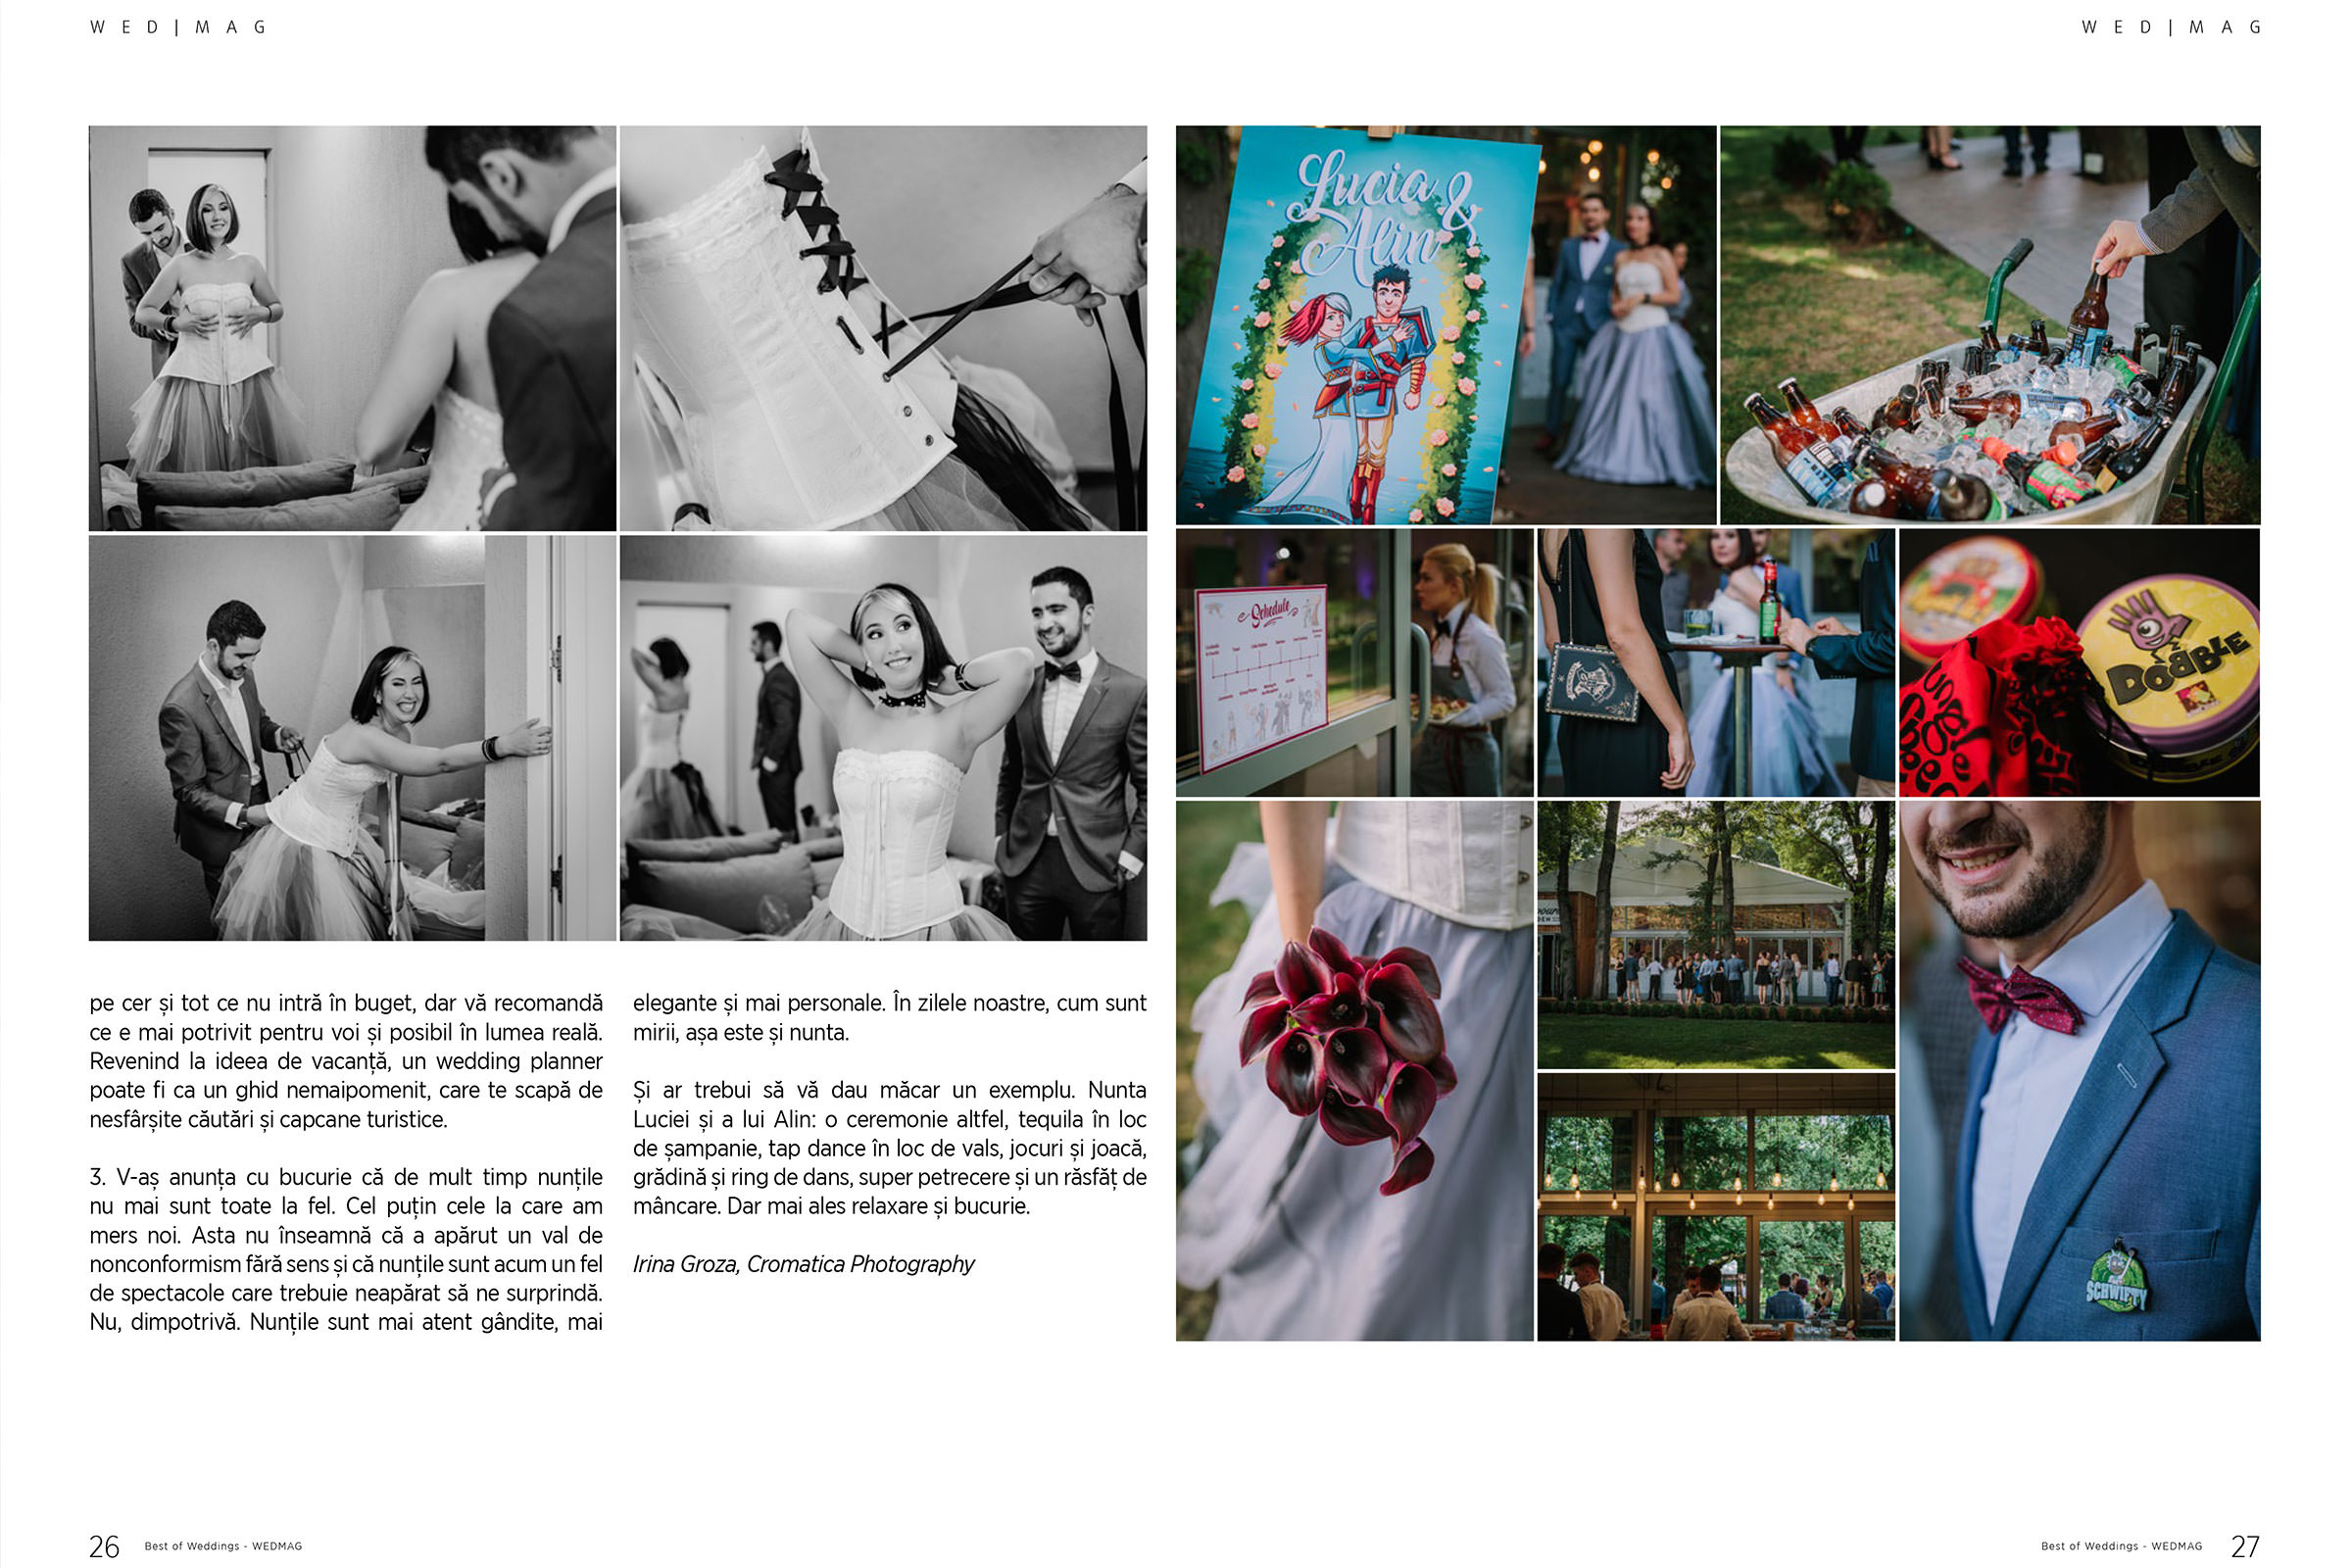 cromatica in best of weddings 2019 03